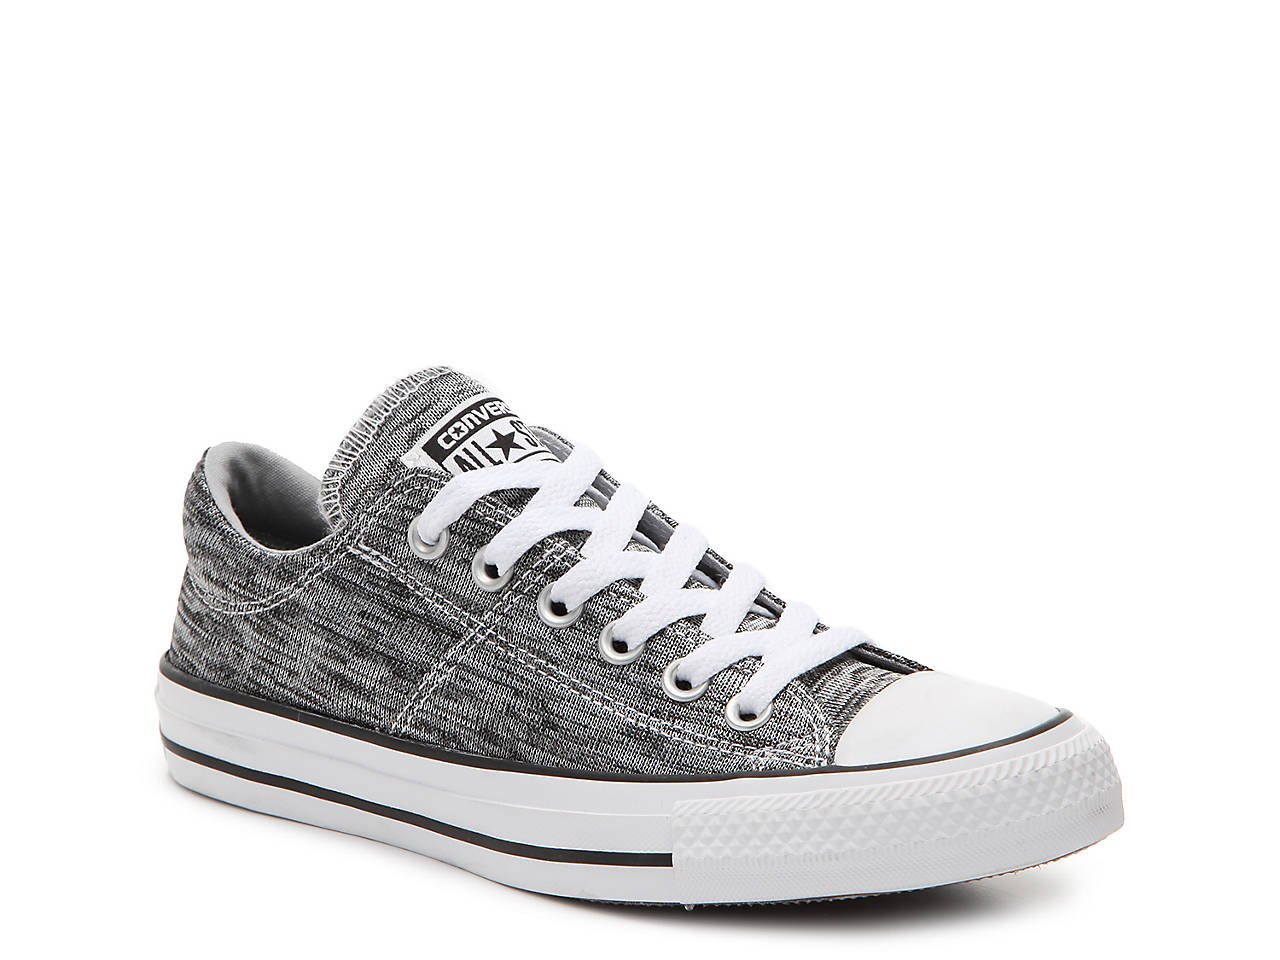 c3b054c3881b2a Converse Chuck Taylor All Star Madison Sneaker - Women s Women s ...